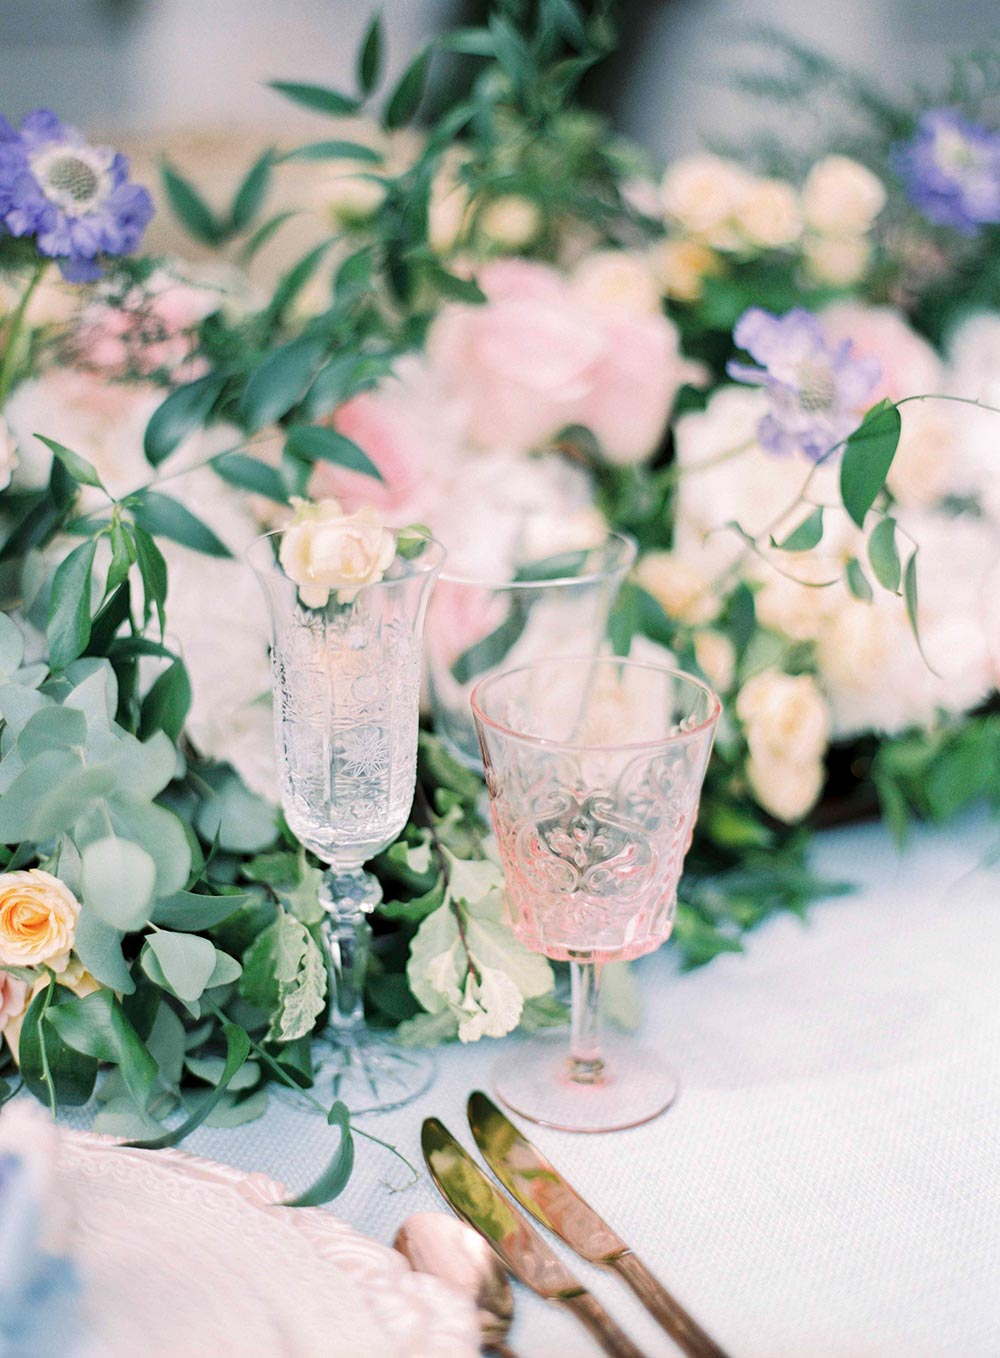 delicate wedding stemware with blush and blue hues